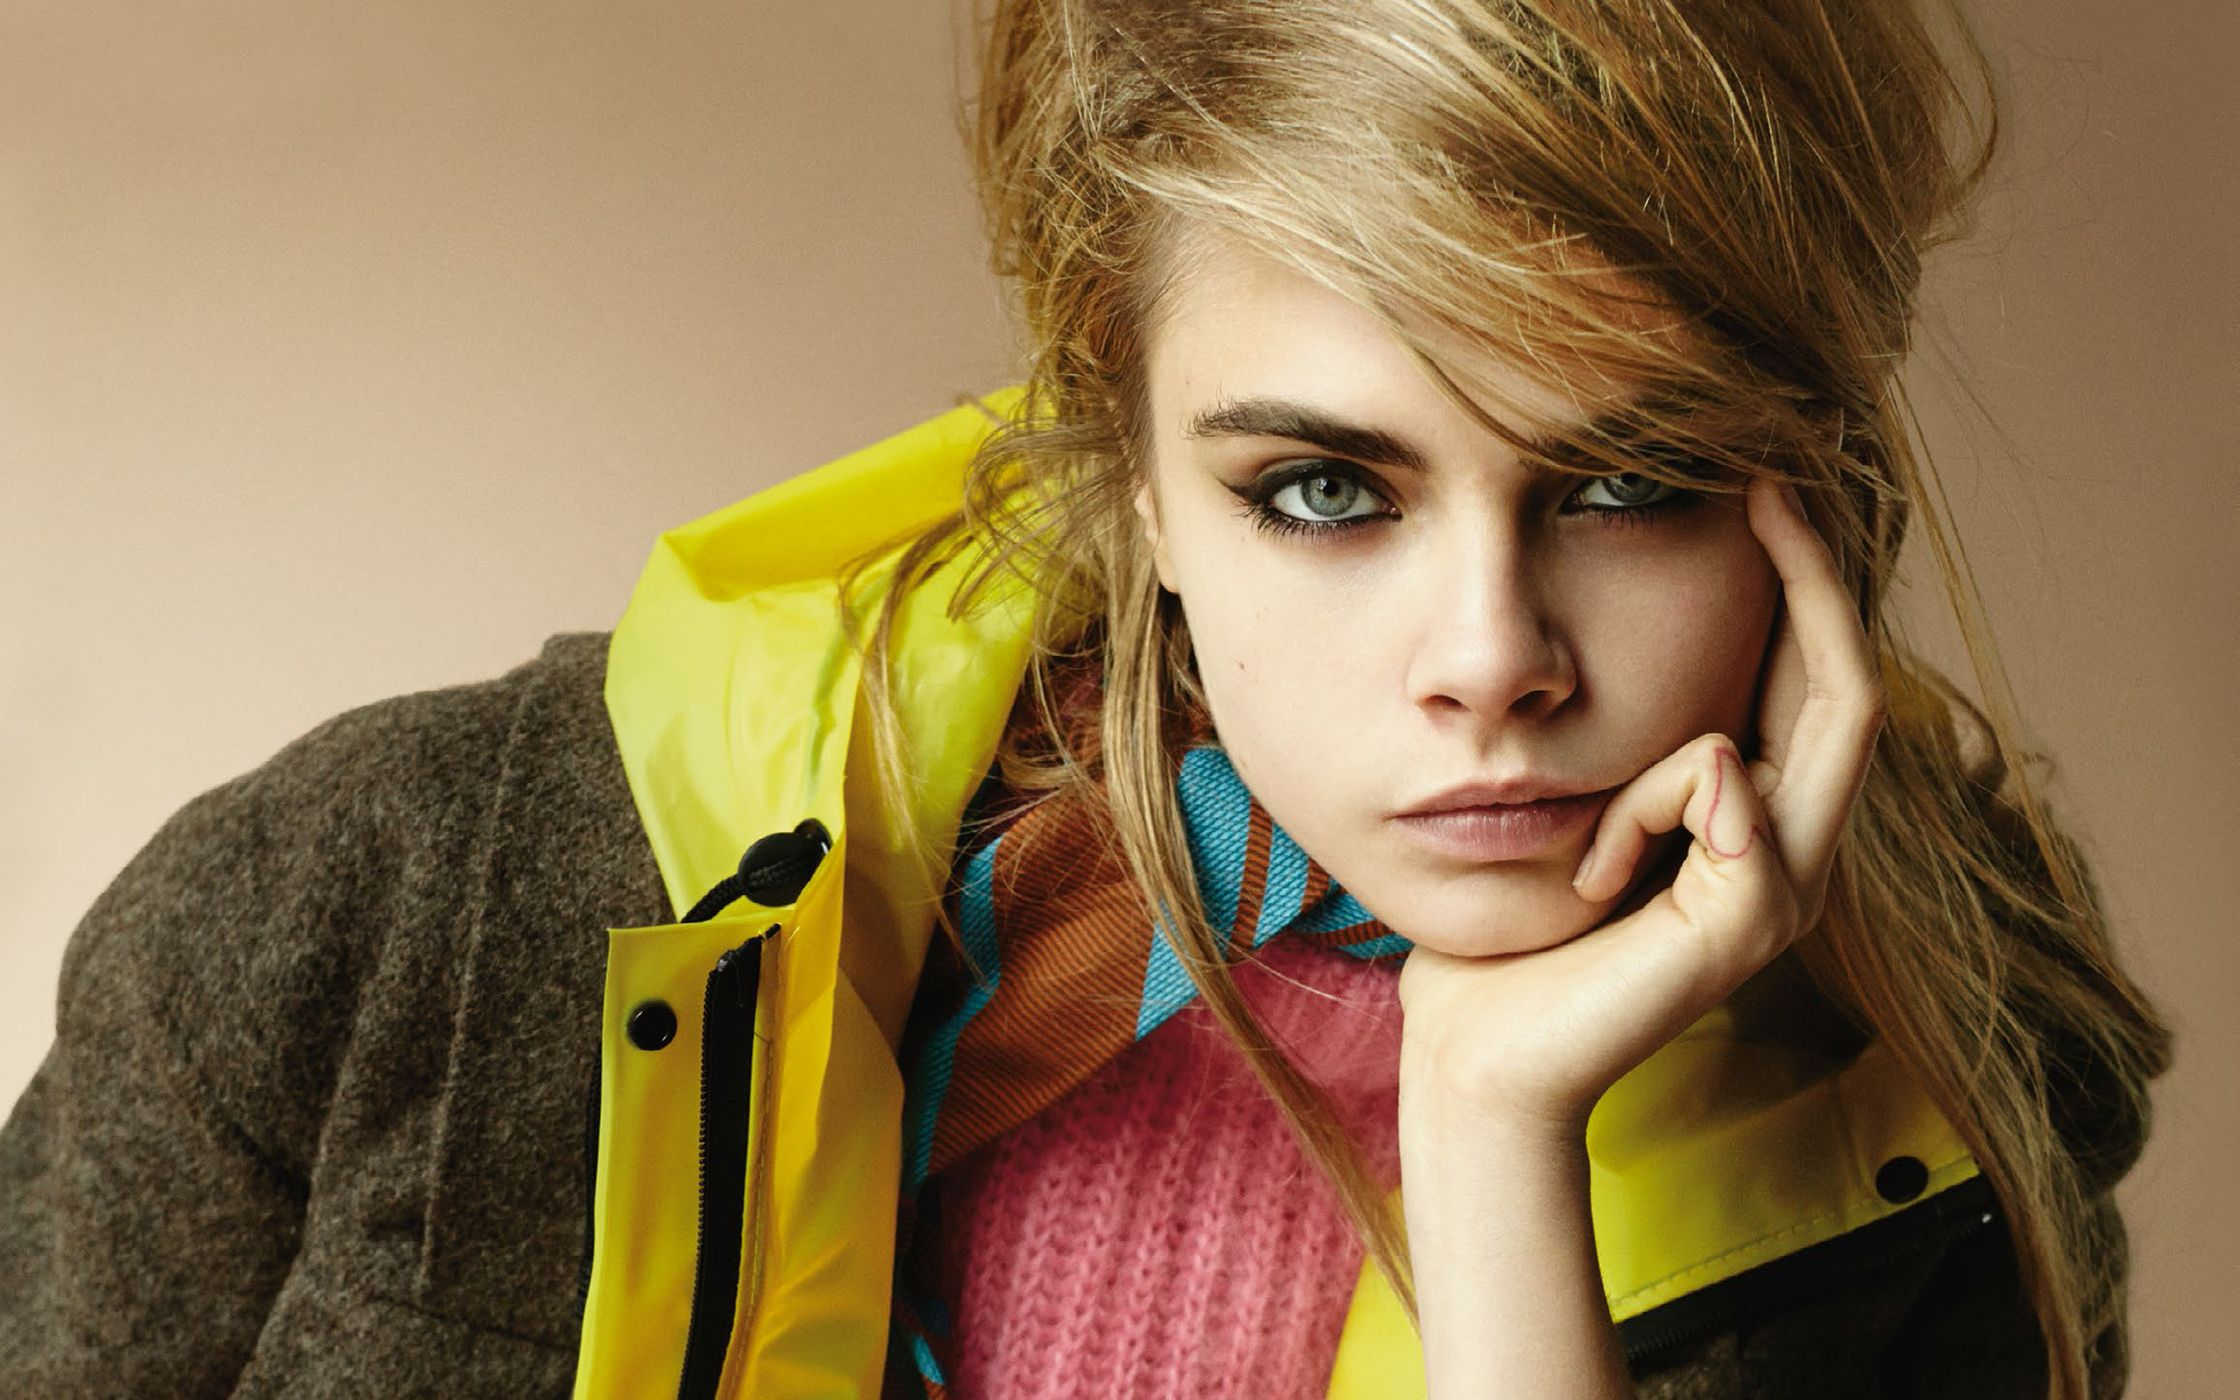 Cara Delevingne Hd Wallpapers Backgrounds Wallpaper